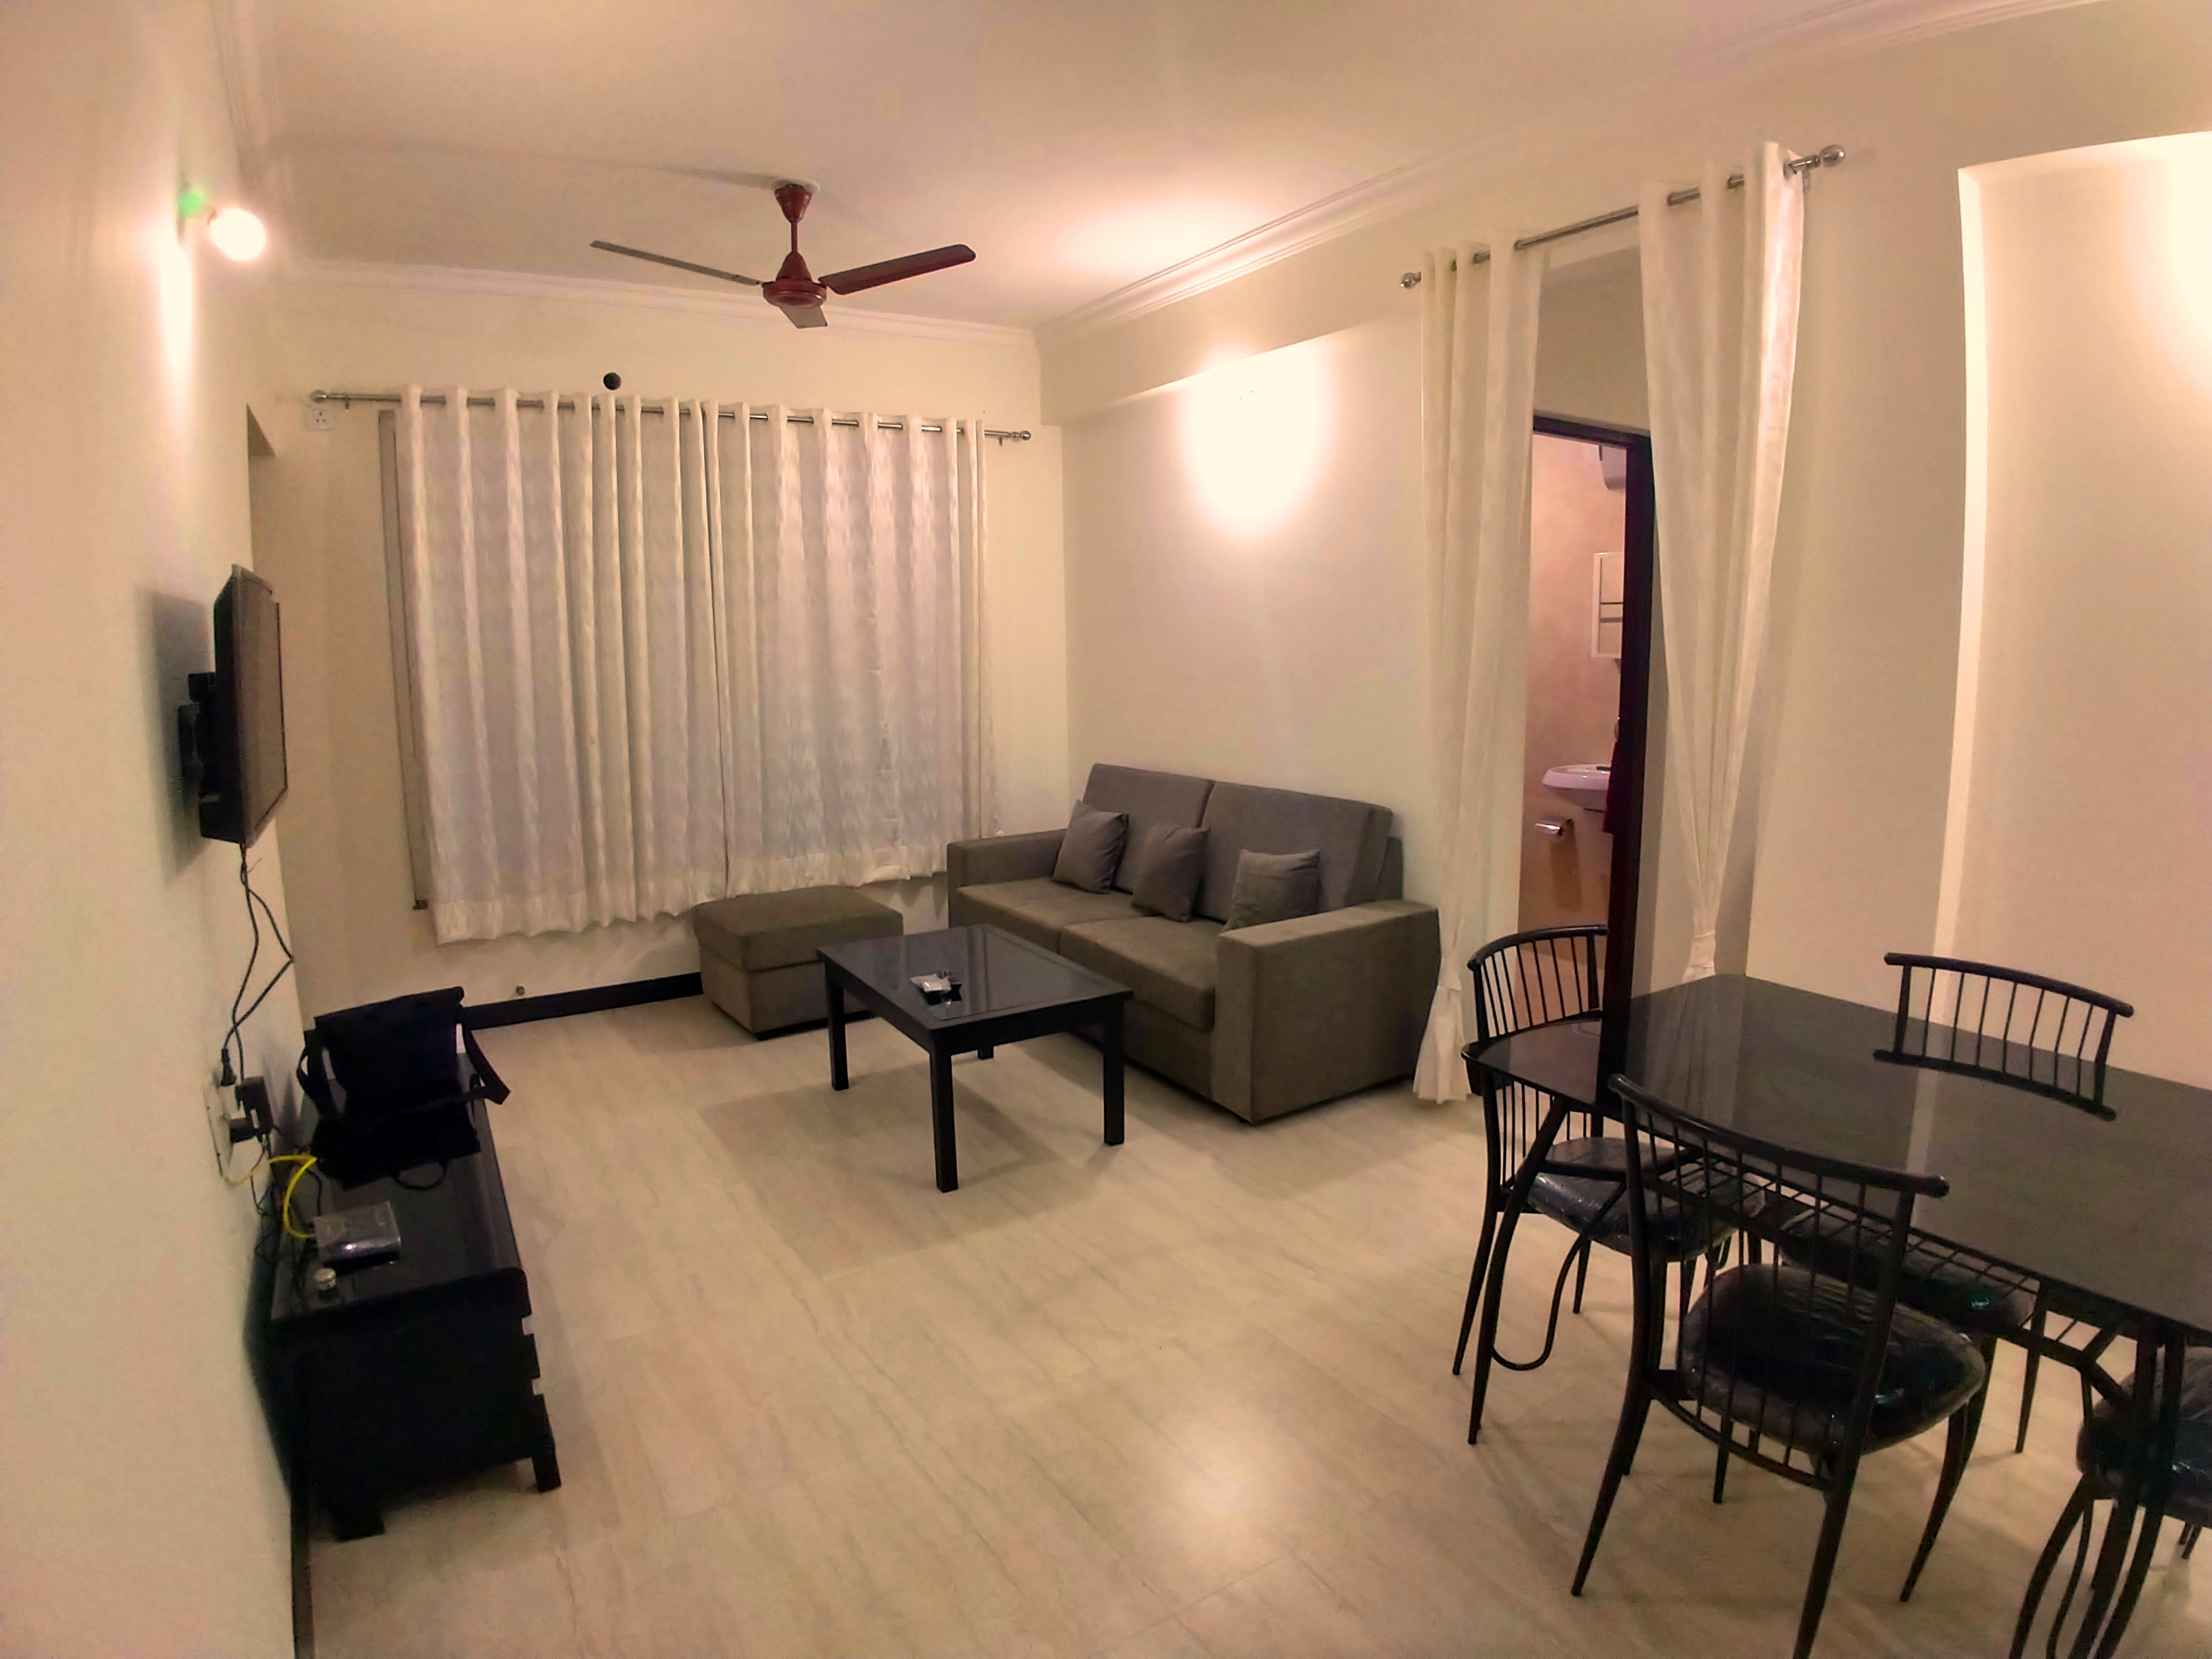 Image Gallery - Service Apartments in Siolim North Goa India